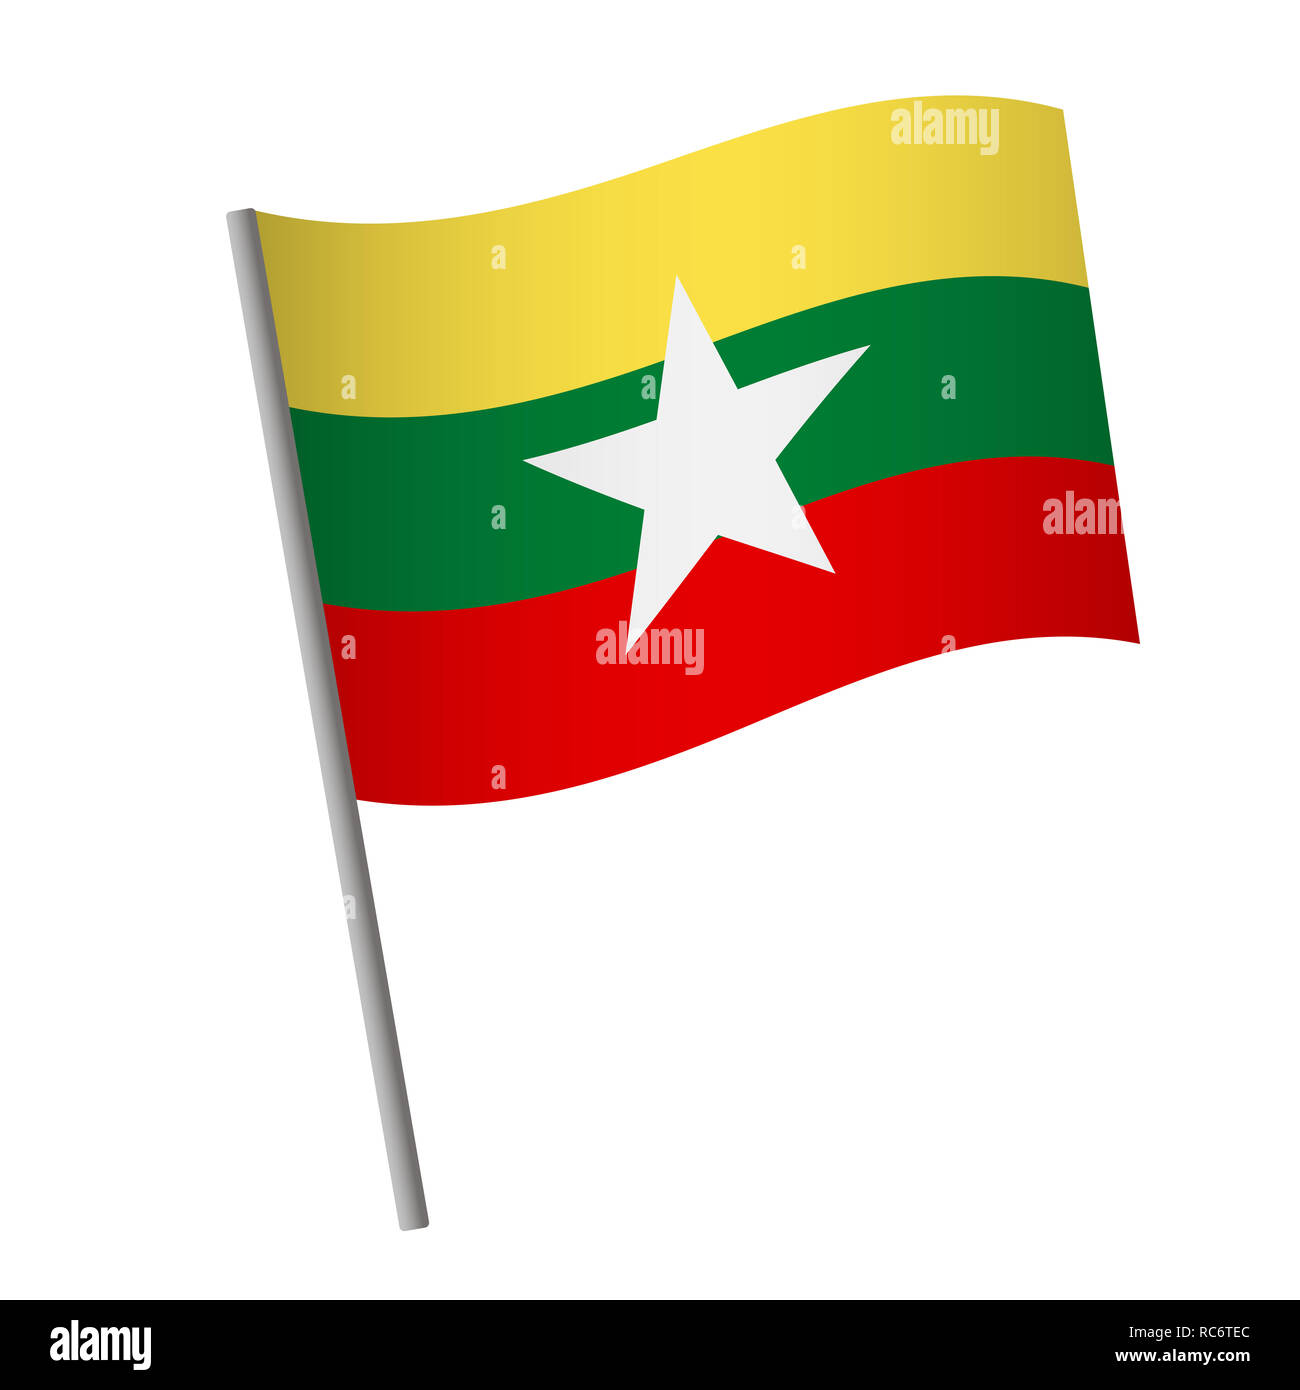 Myanmar flag icon. National flag of Myanmar on a pole  illustration. - Stock Image